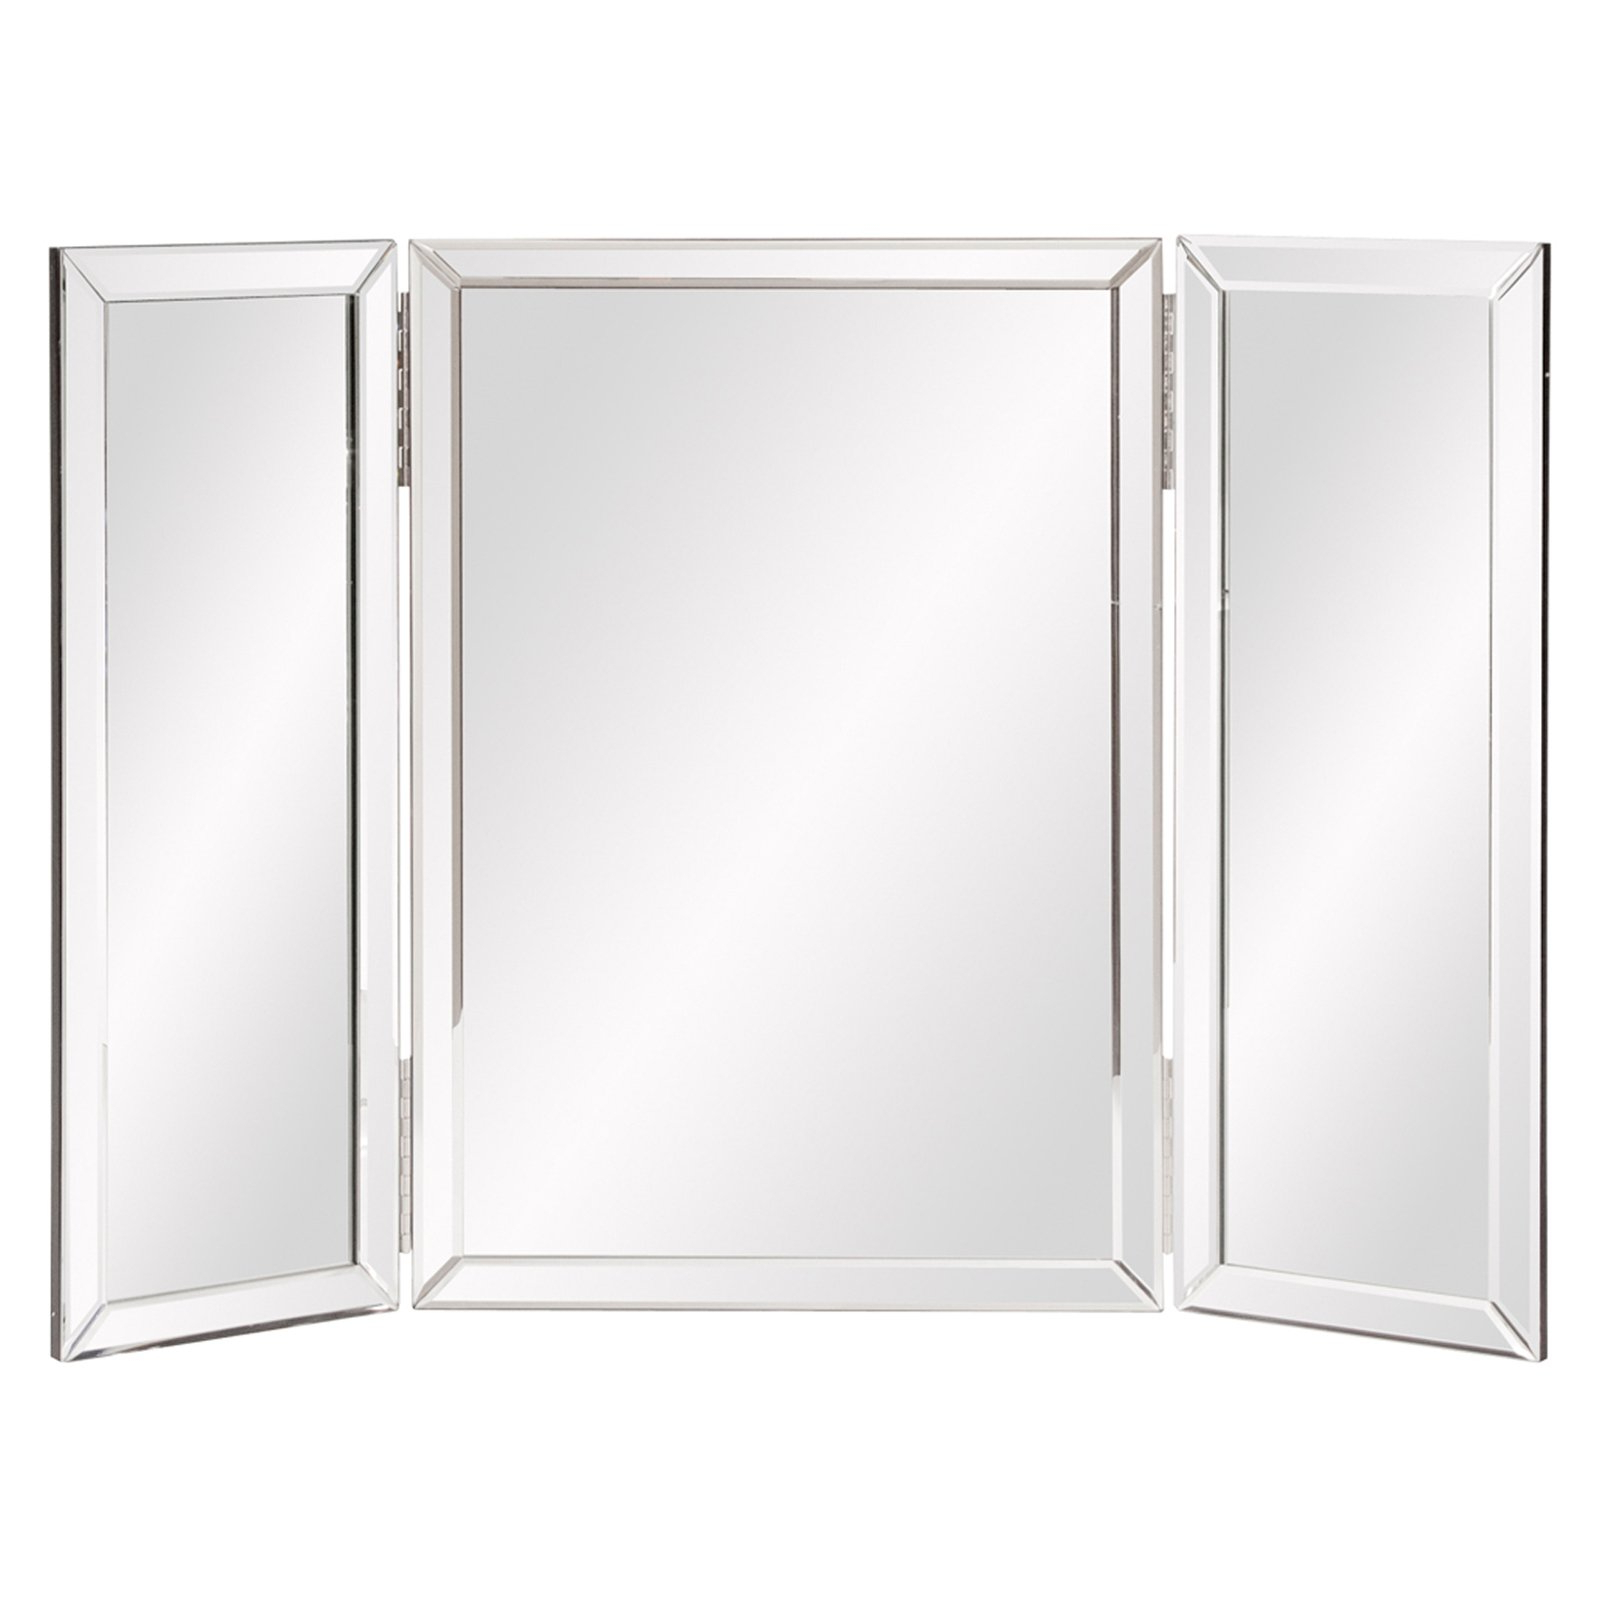 Tri Fold Wall Mirrors Within Well Known Elizabeth Austin Tripoli Trifold Vanity Mirror – 31W X 21H In (View 8 of 20)